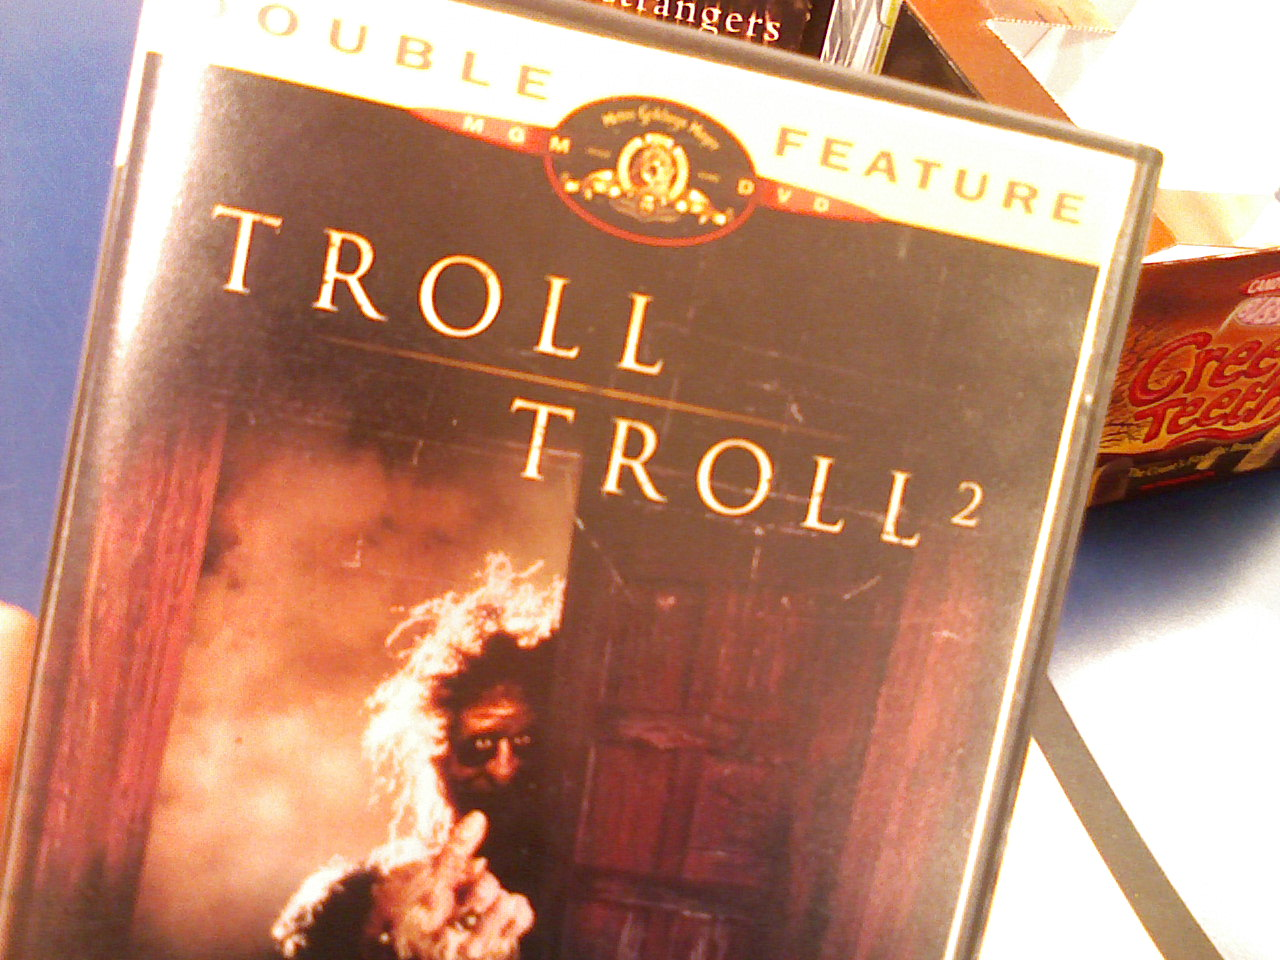 Troll 2: Quite possibly the best worst movie ever made.